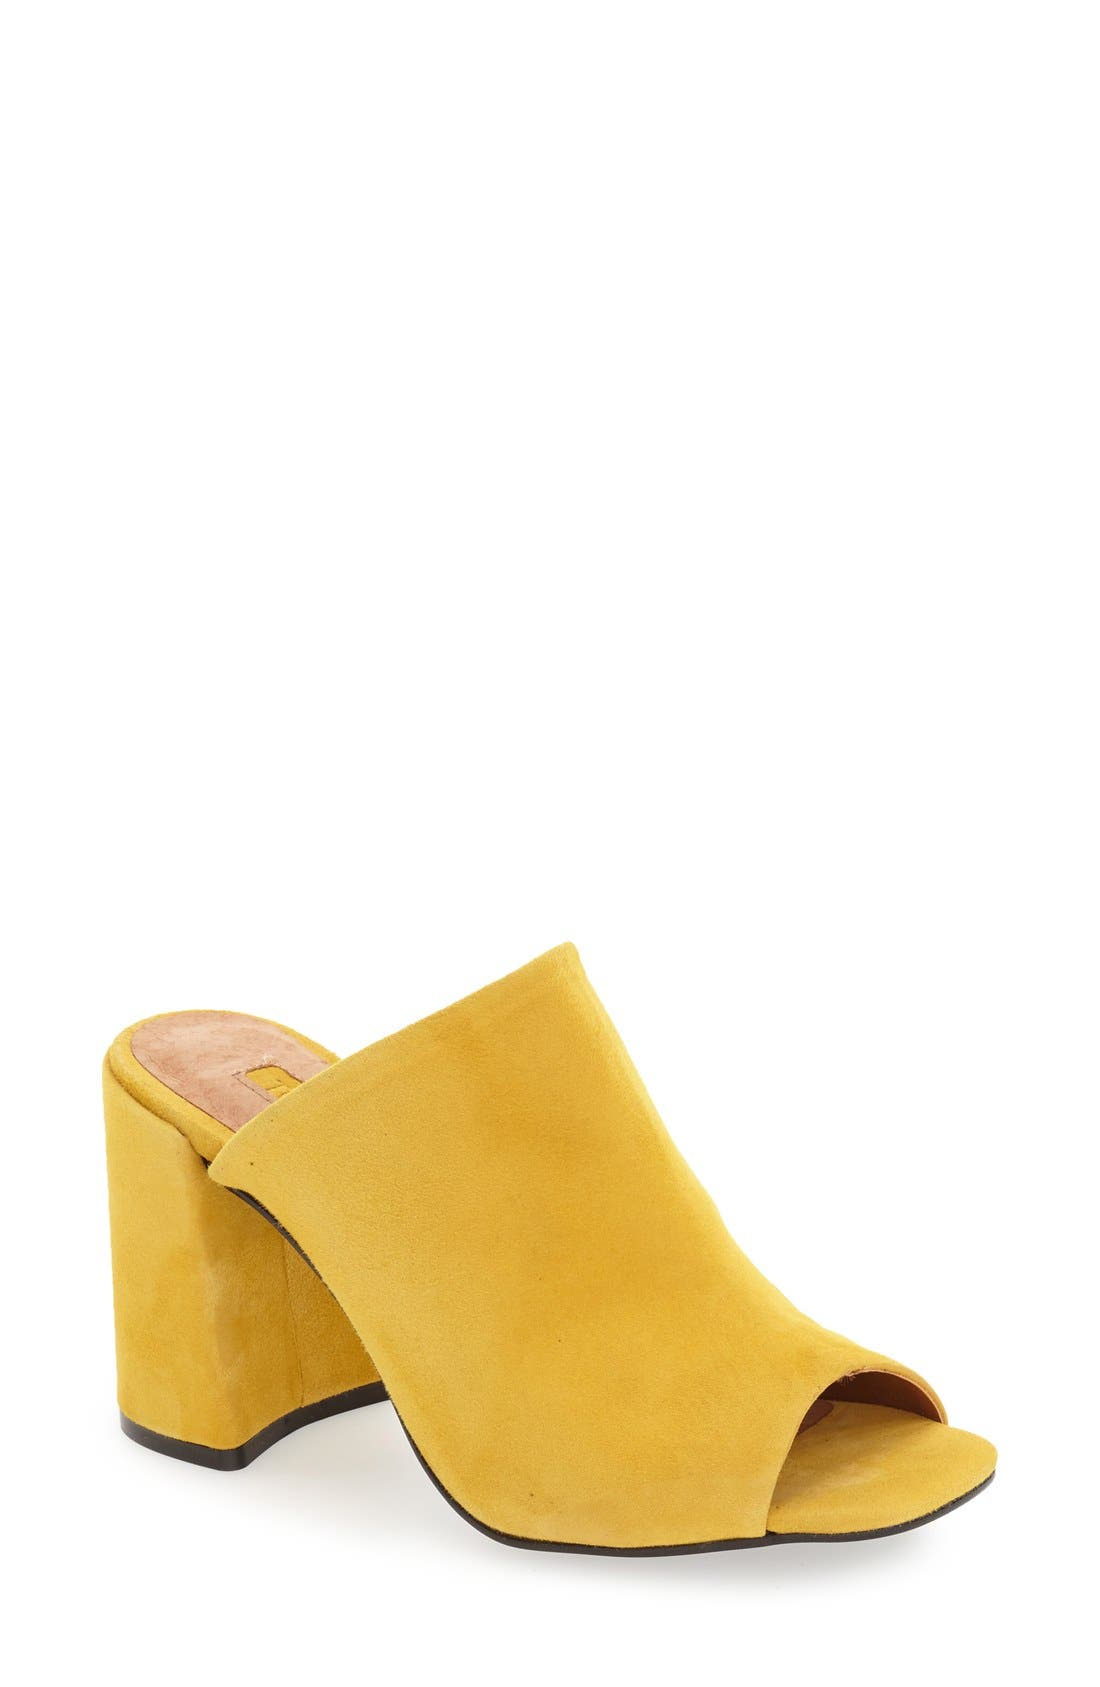 Alternate Image 1 Selected - Topshop 'Ruler' High Vamp Mule (Women)